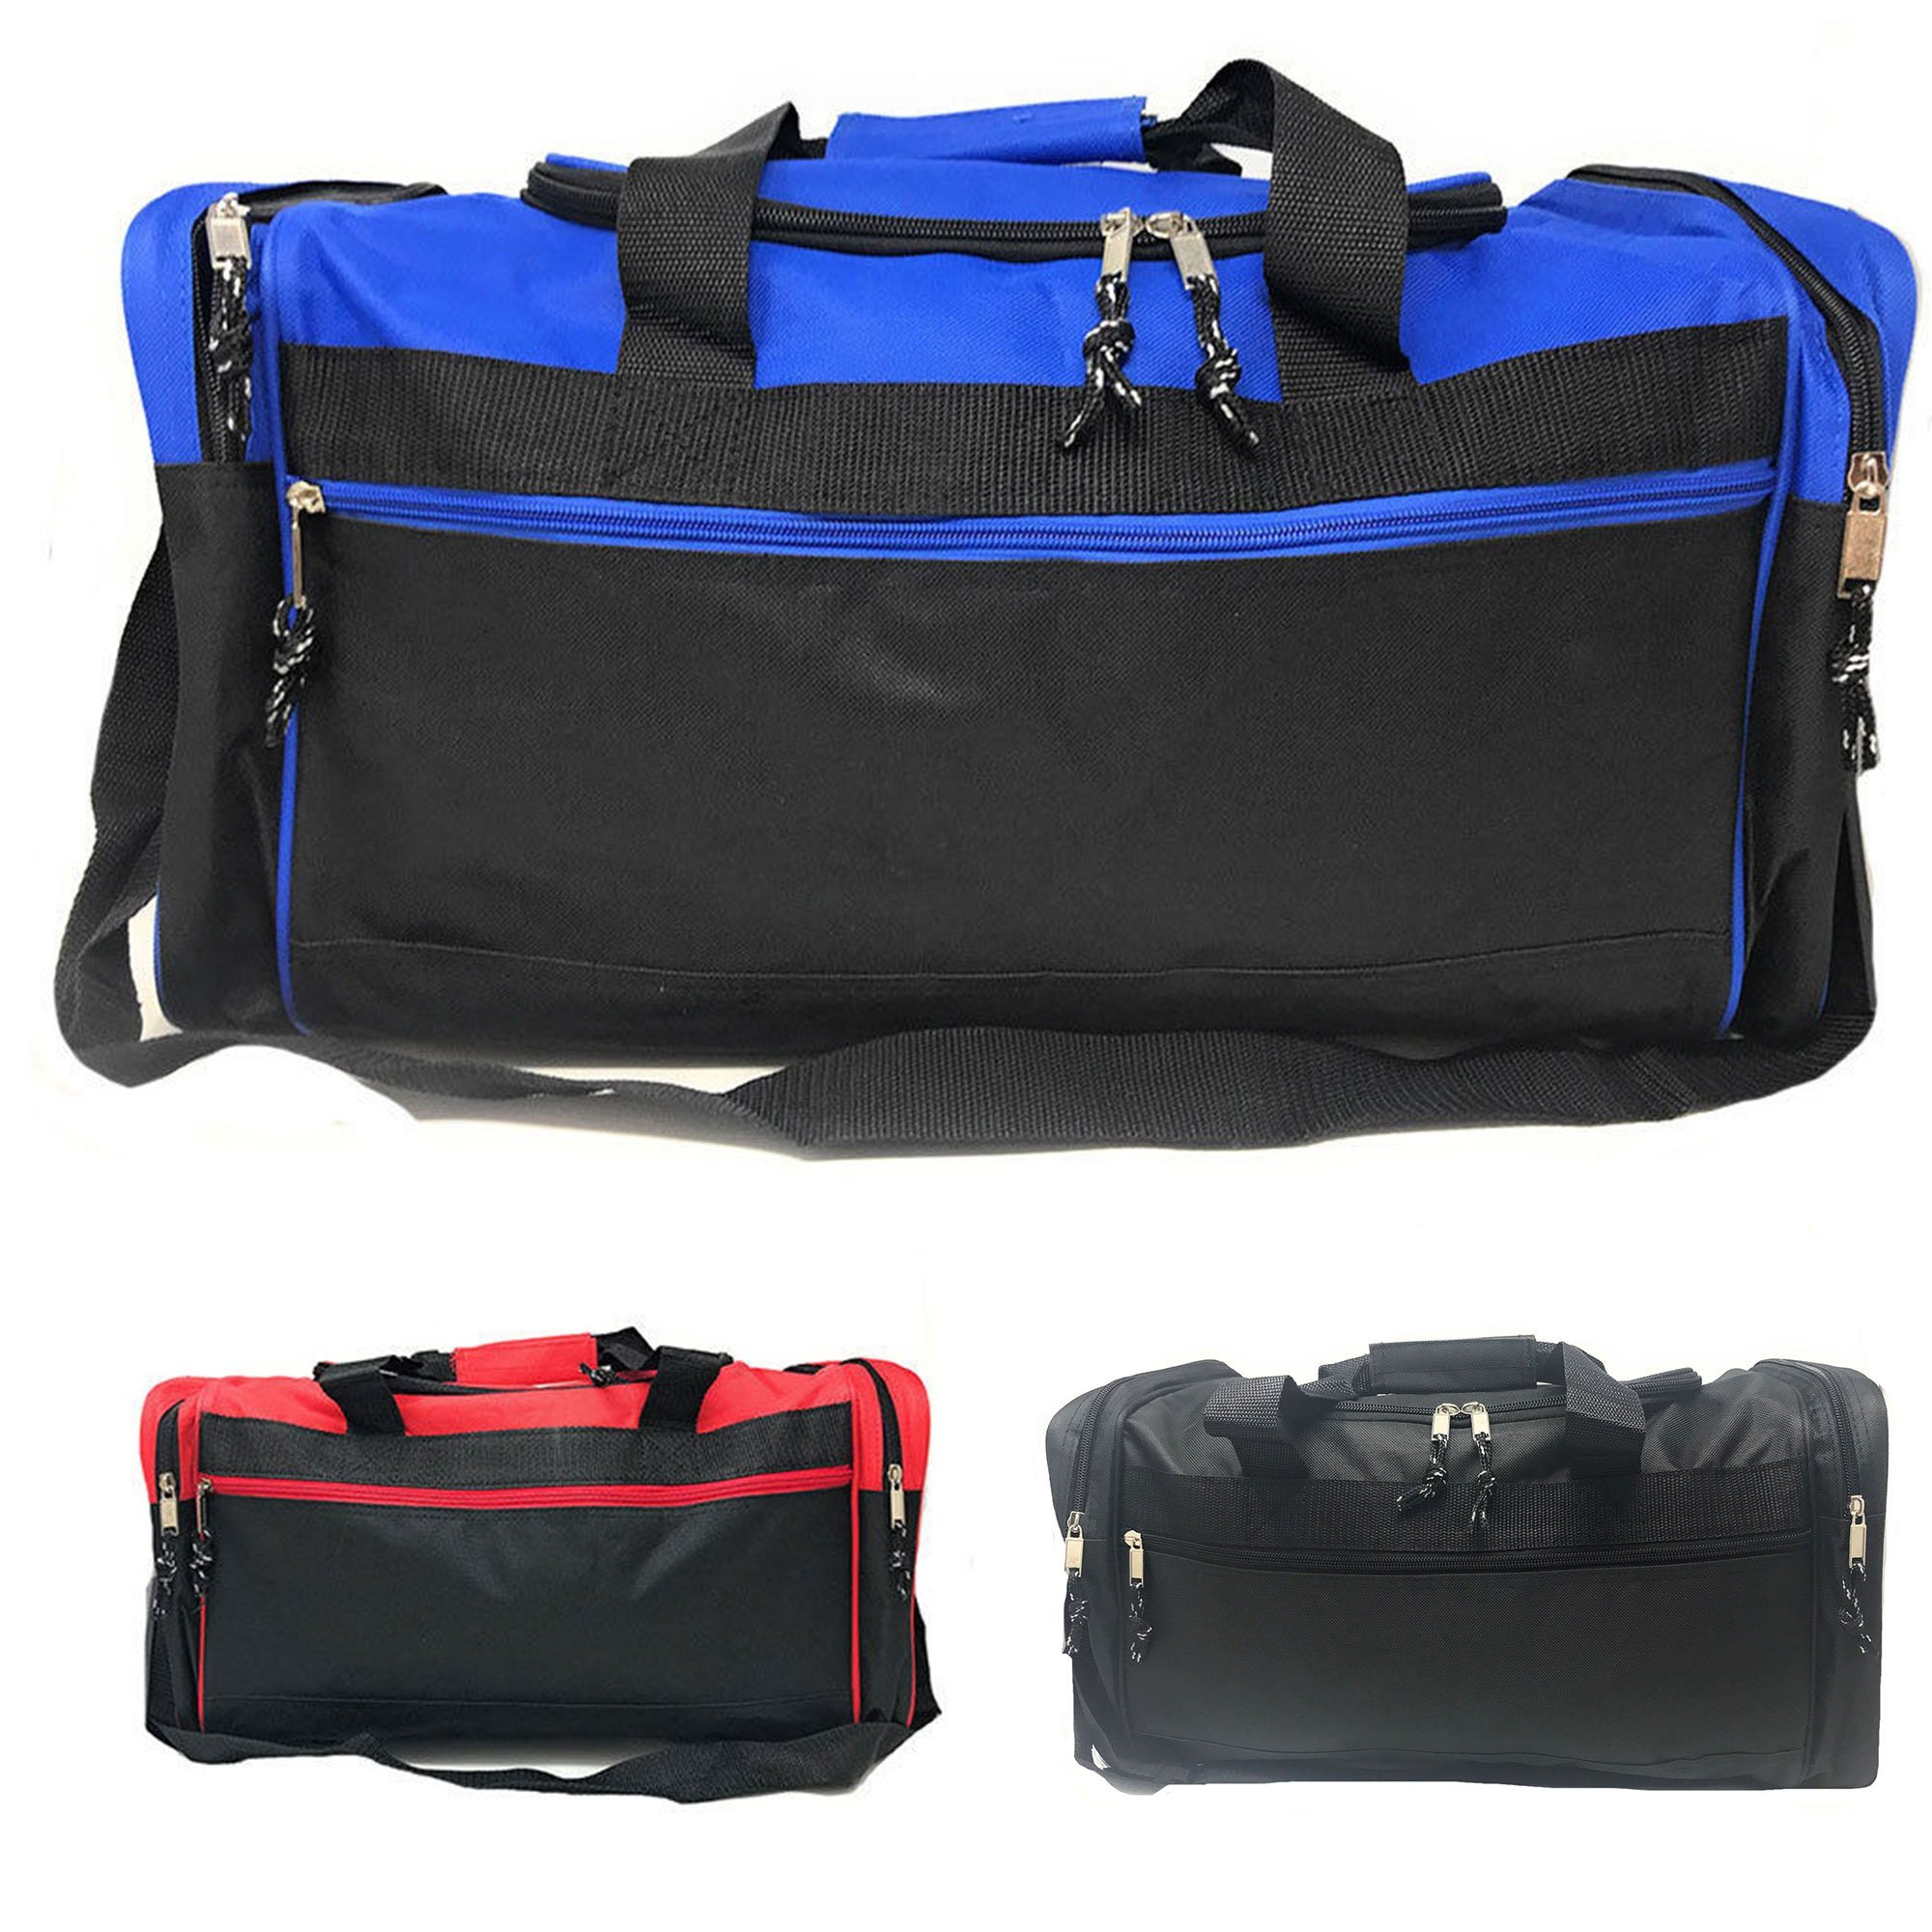 21 quot  Square Heavy Duty Duffle Bags Travel Sports School Gym Work  Luggage Carry-On - Walmart.com bafe5c88b98